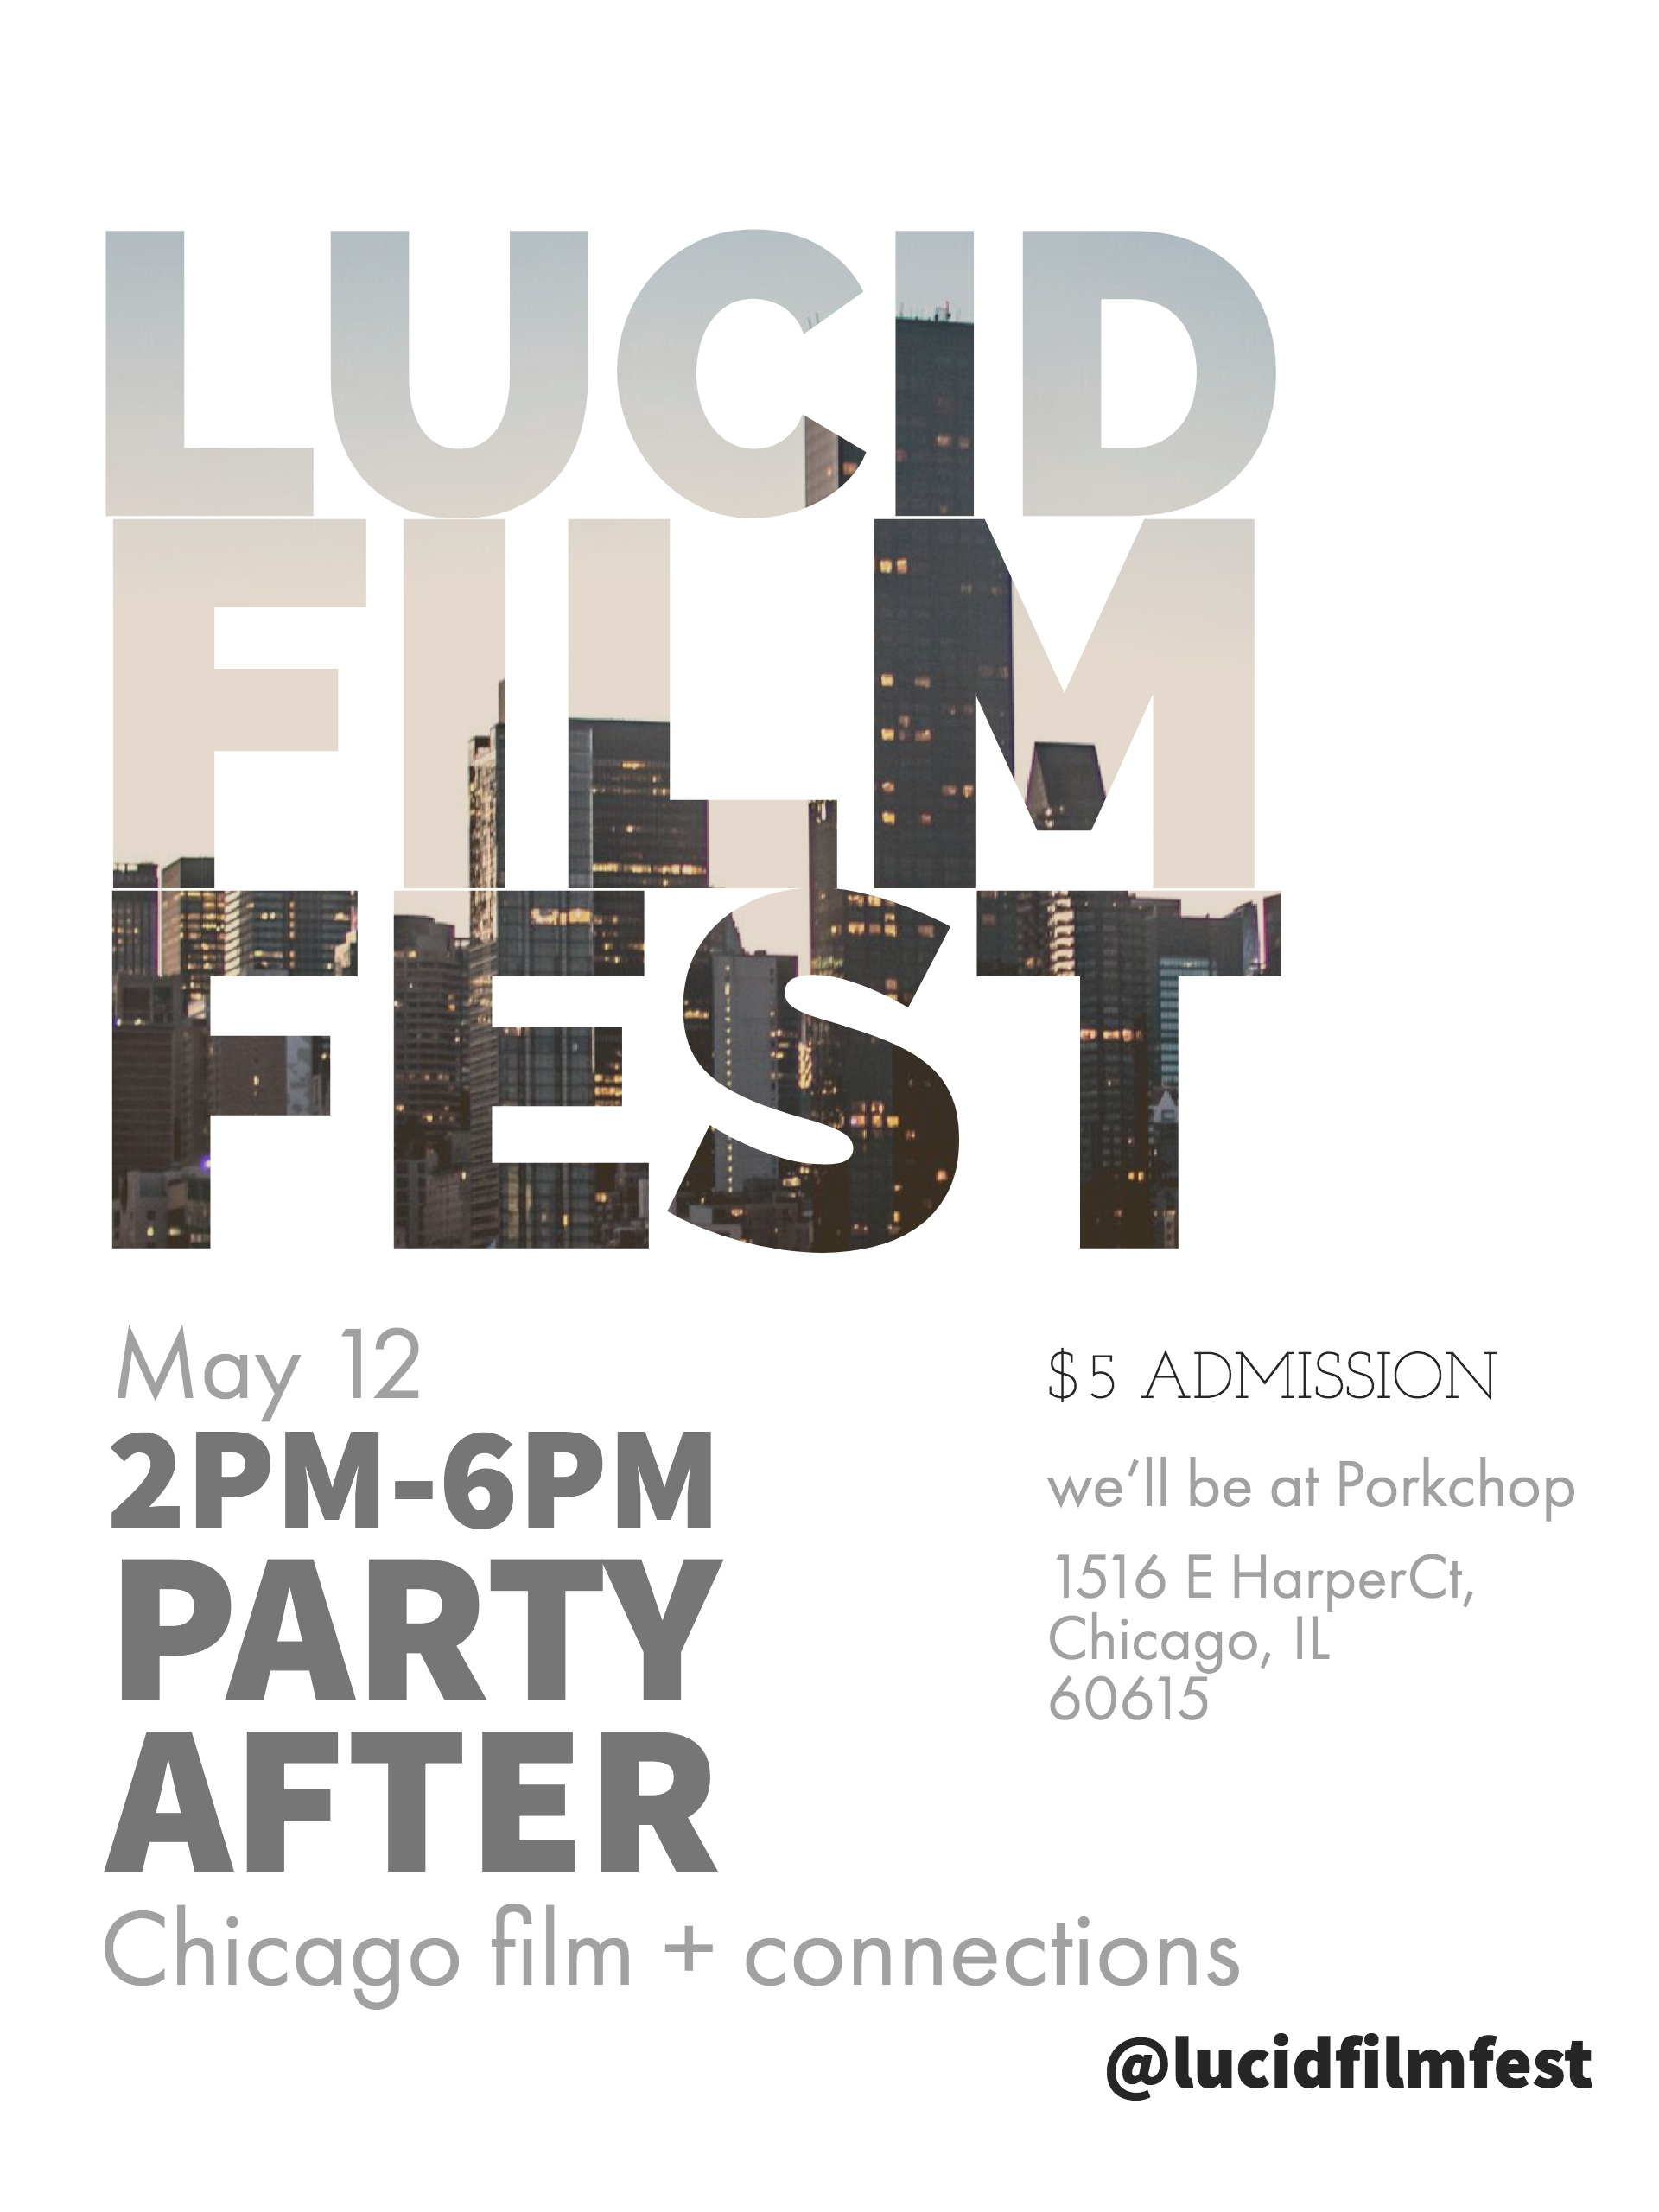 We want to stand out.  - This won't be your typical film festival. This will be an opportunity for artists with all levels of experience and backgrounds will be able to come together to eat good food, drink from a special event menu, celebrate each other's work, and make connections.  Check out and like our Facebook page @LucidFilmFest. Contact LucidFilmFest@gmail.com with any questions.